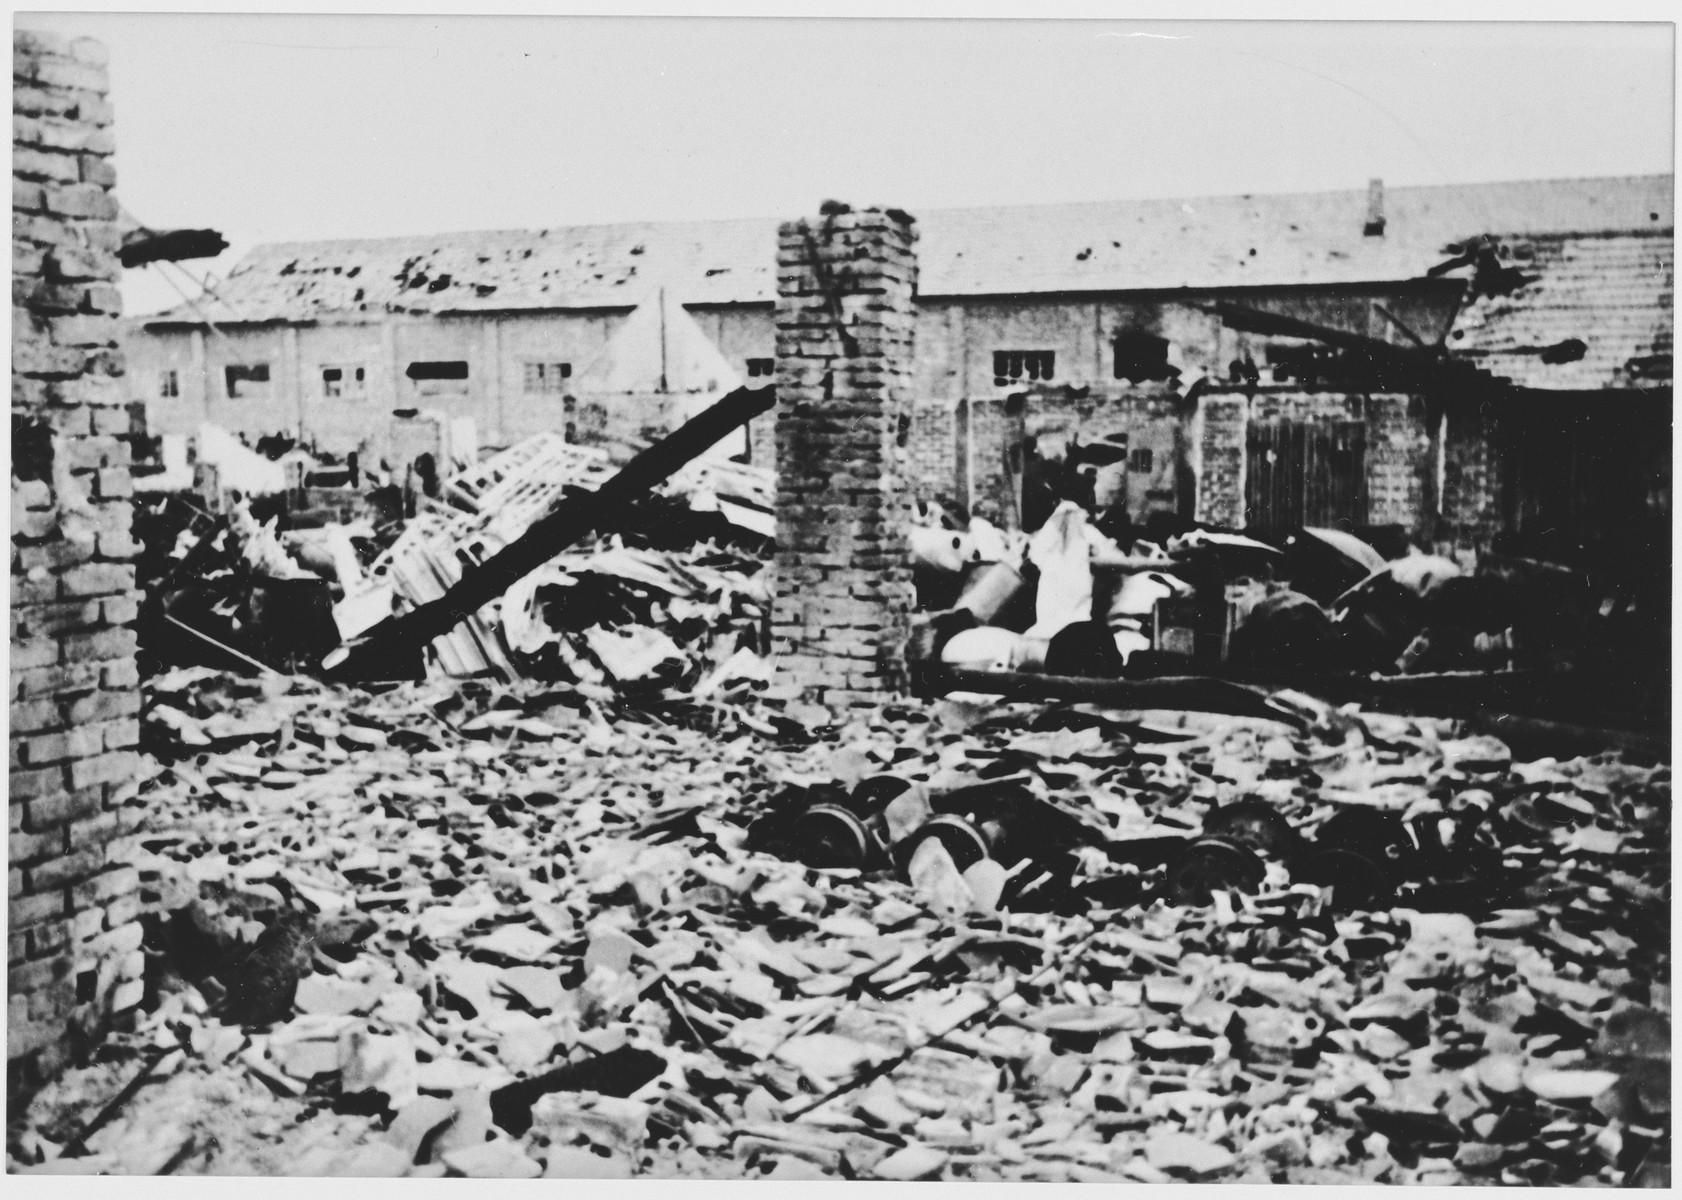 View of the ruins of a warehouse containing scrap metal at the Jasenovac concentration camp.